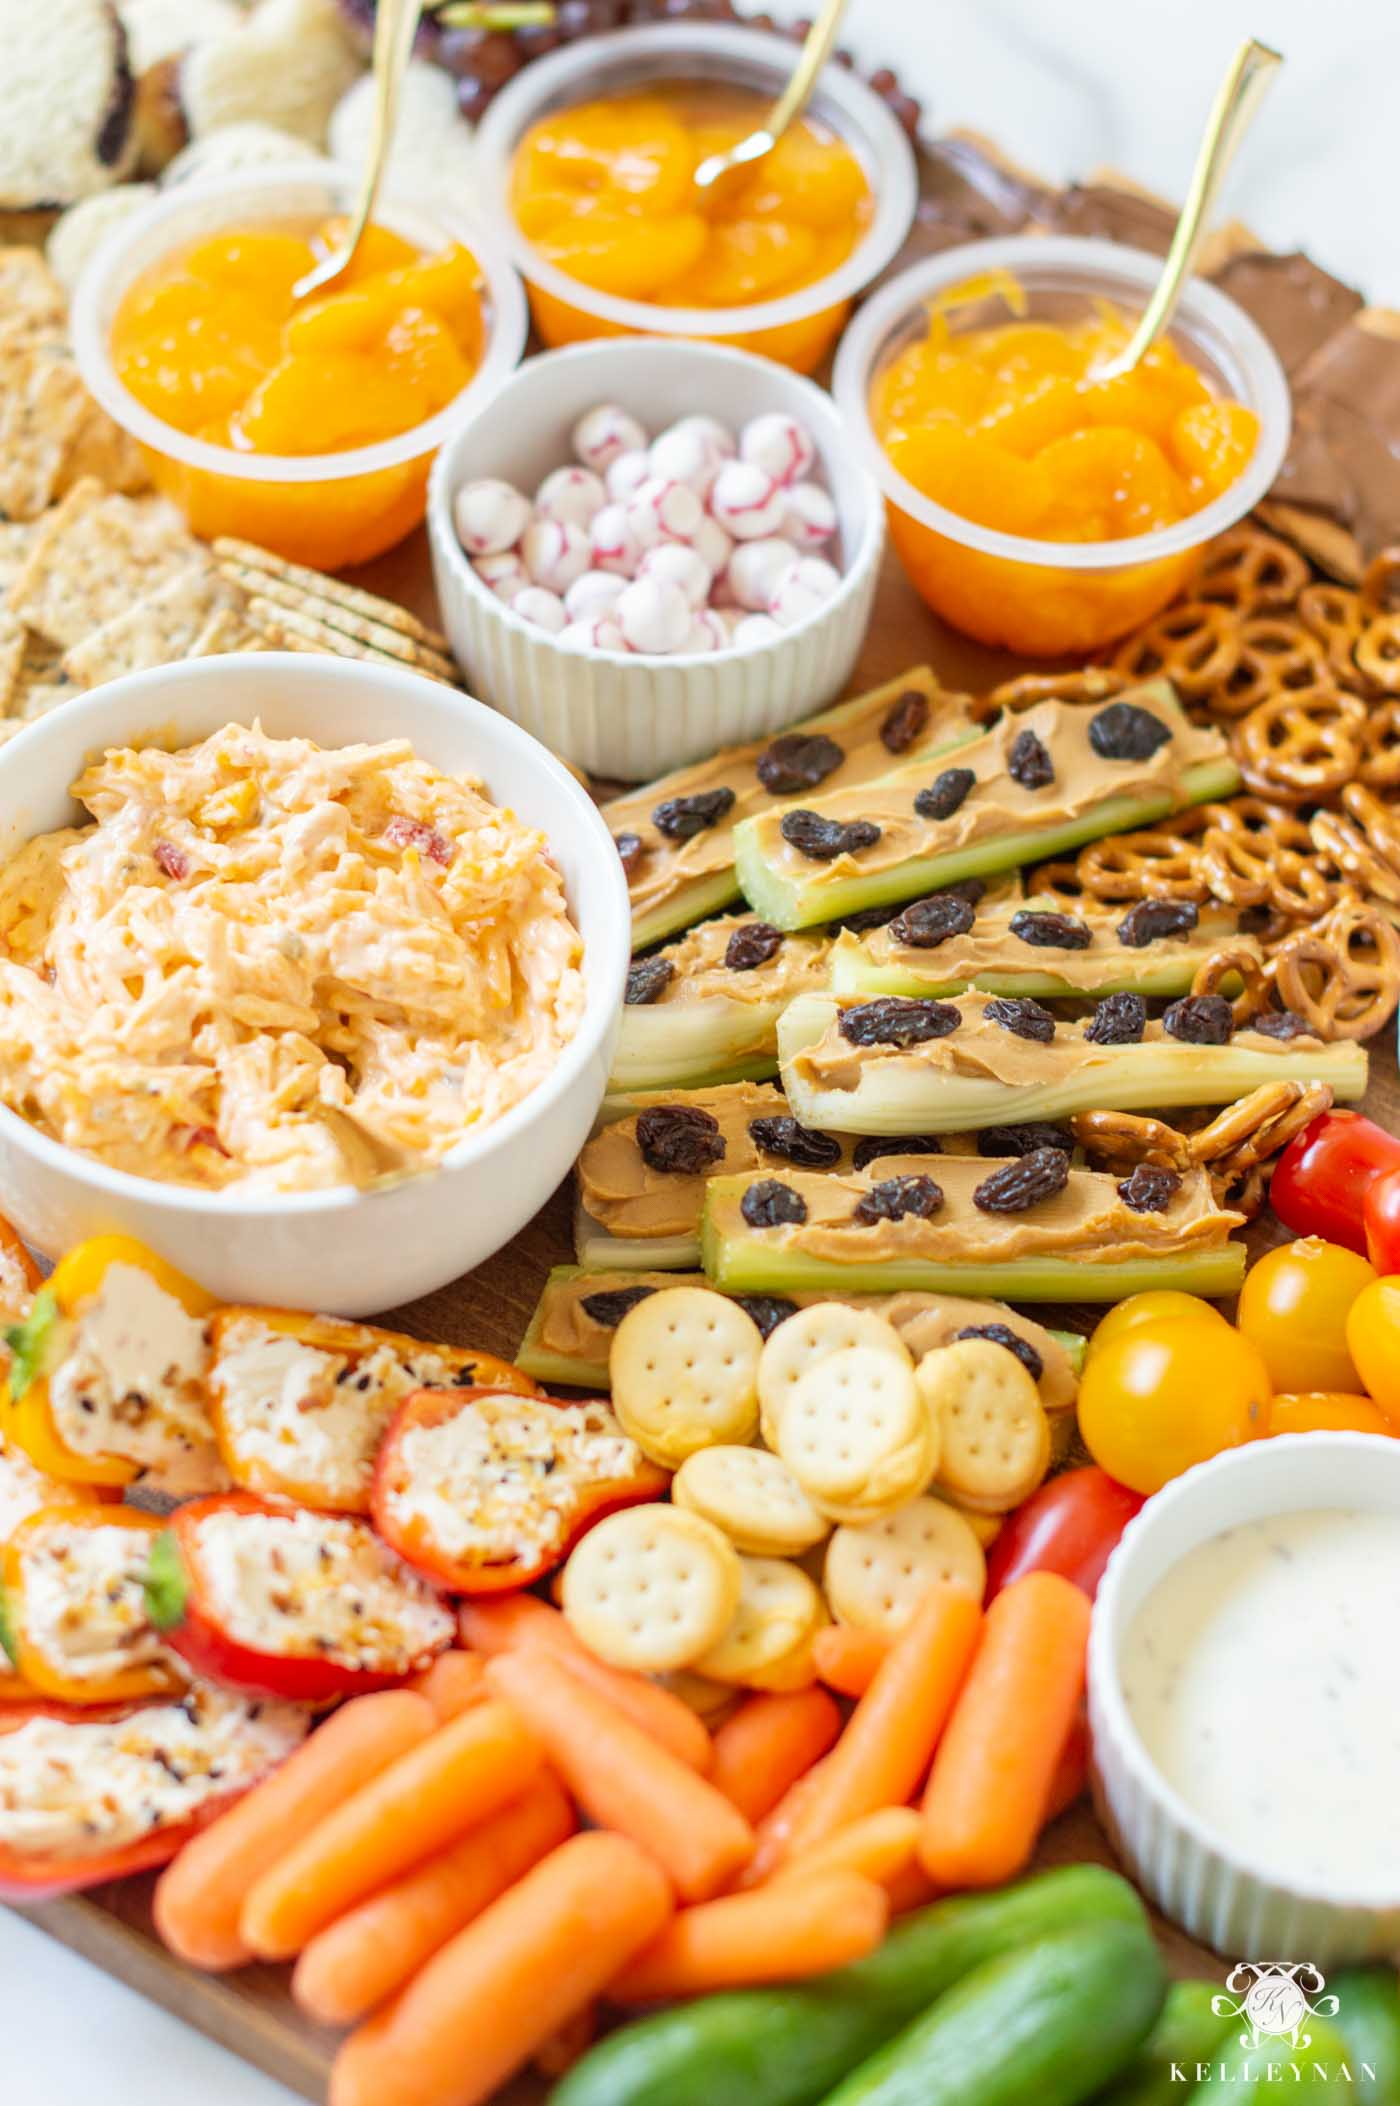 Kids At Home Lunch Ideas -- Charcuterie Board of Favorite Snacks!